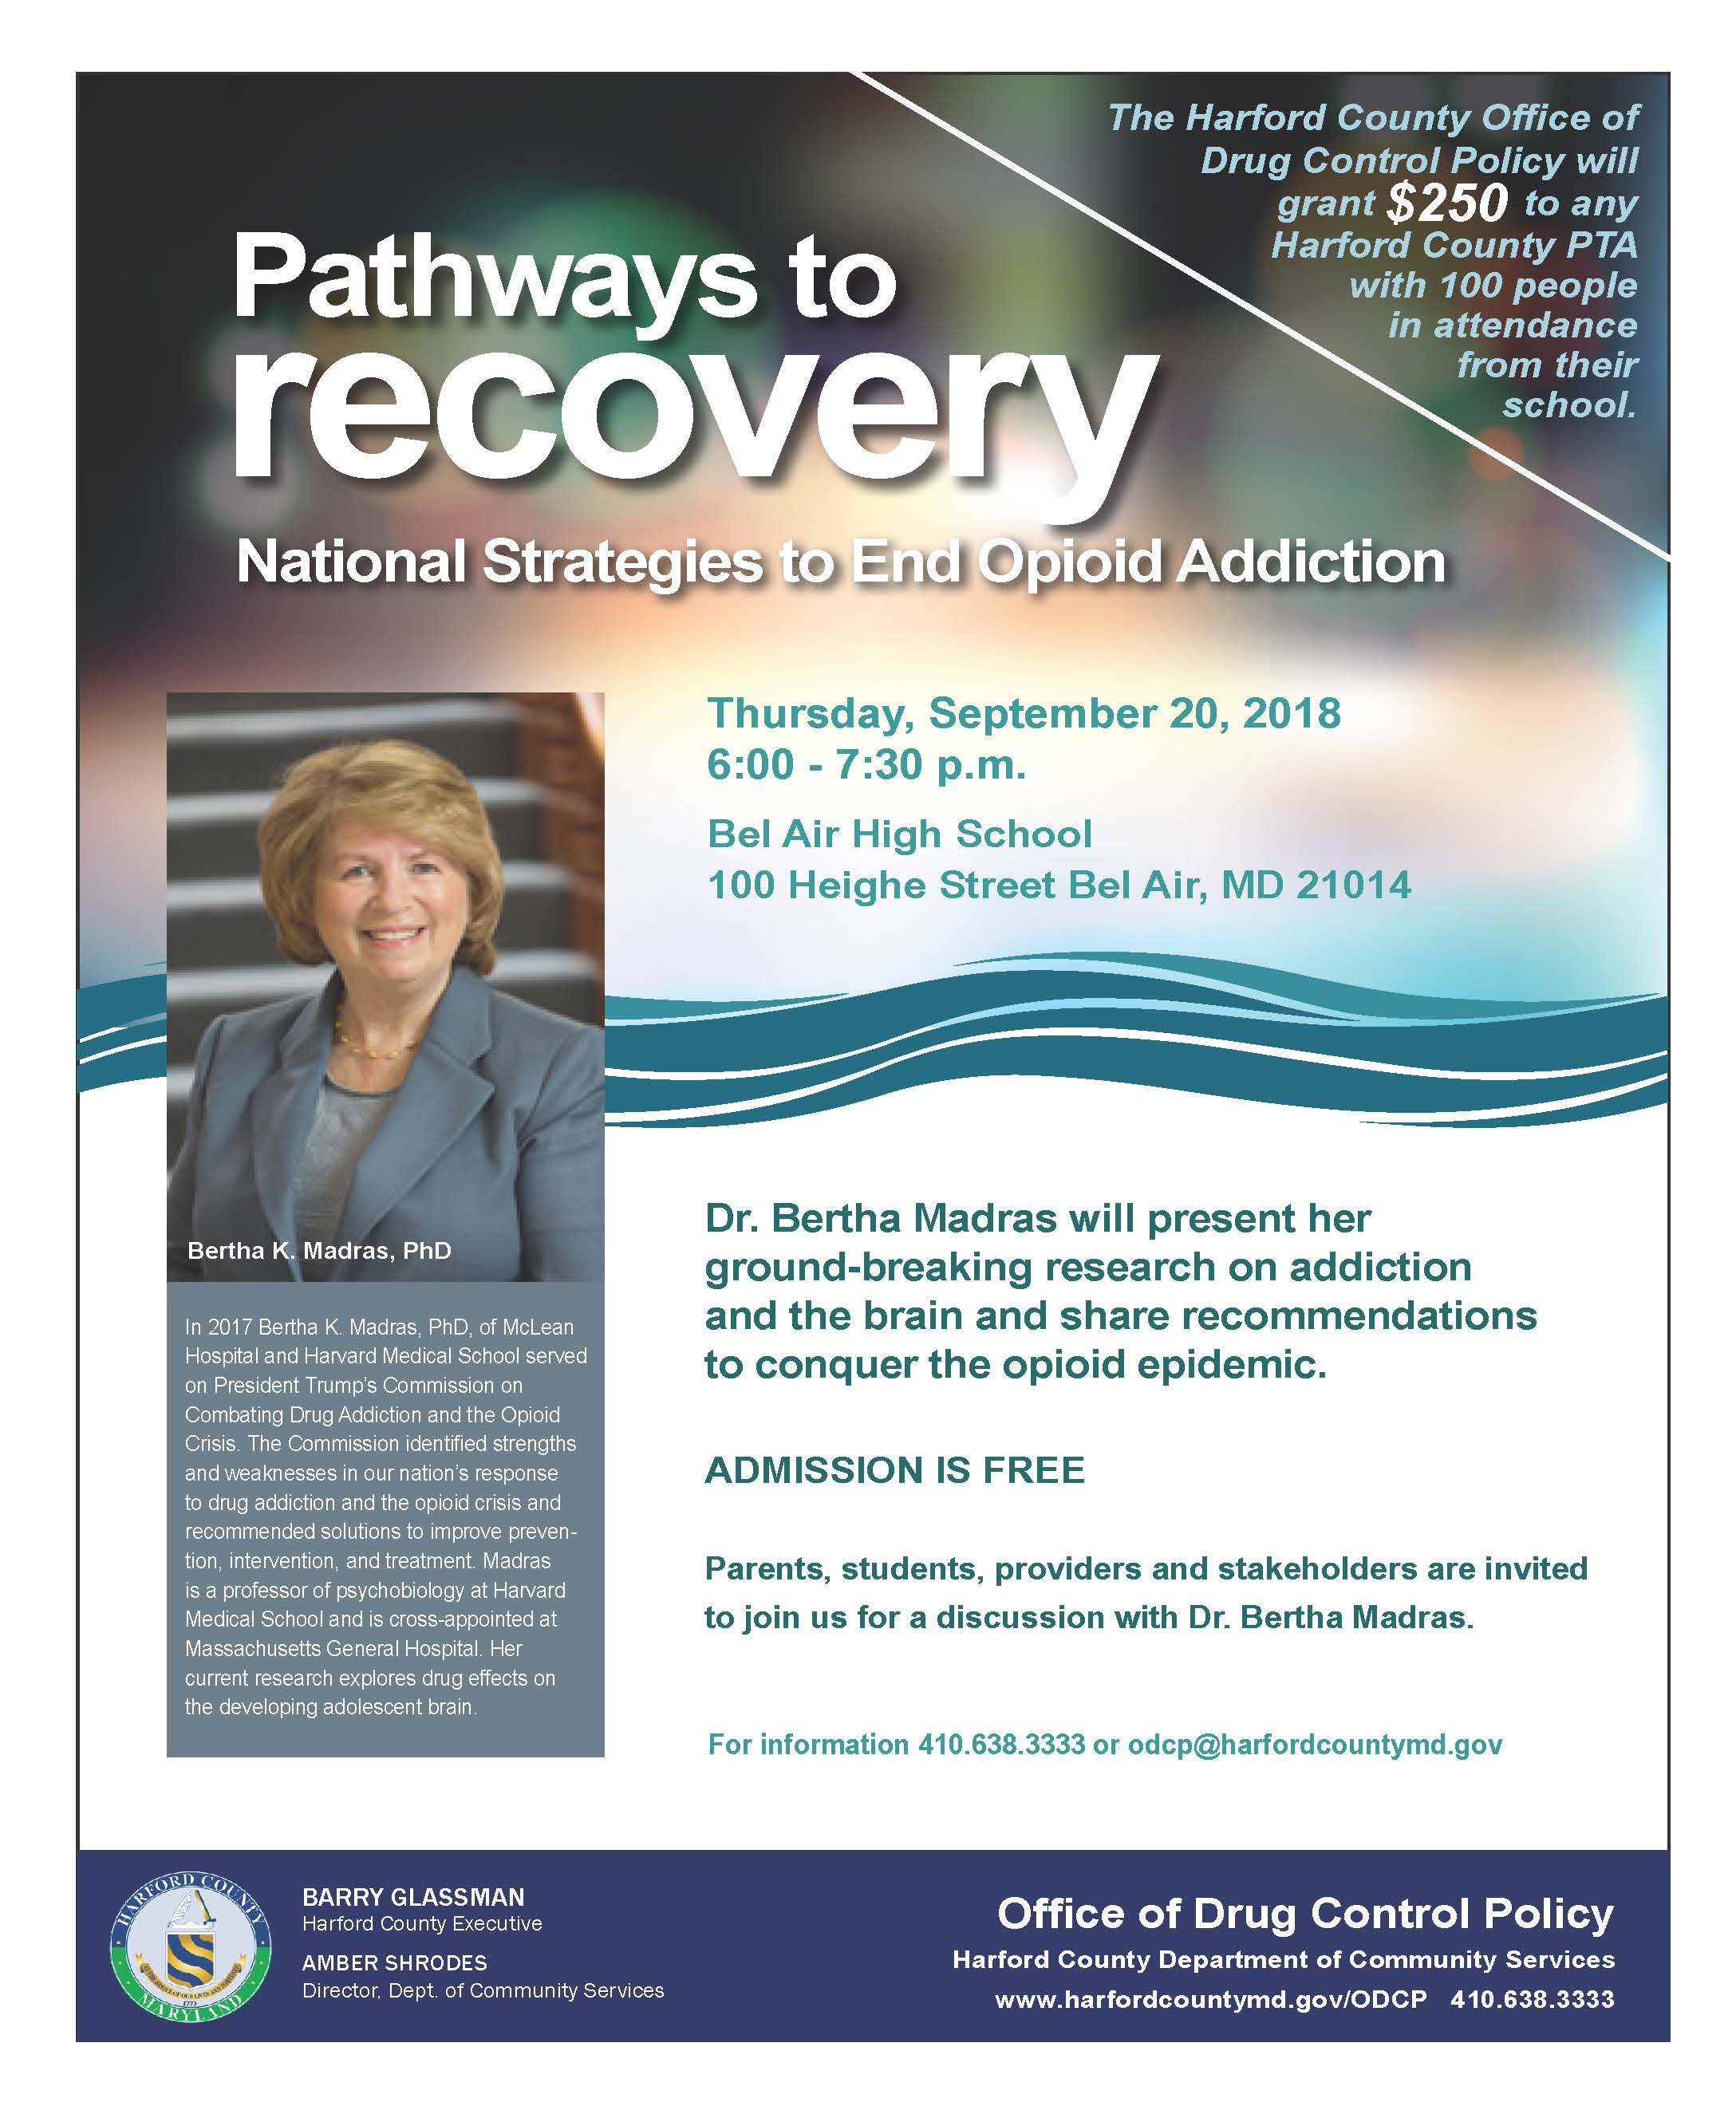 Pathways to Recovery Event Flyer with PTA Banner